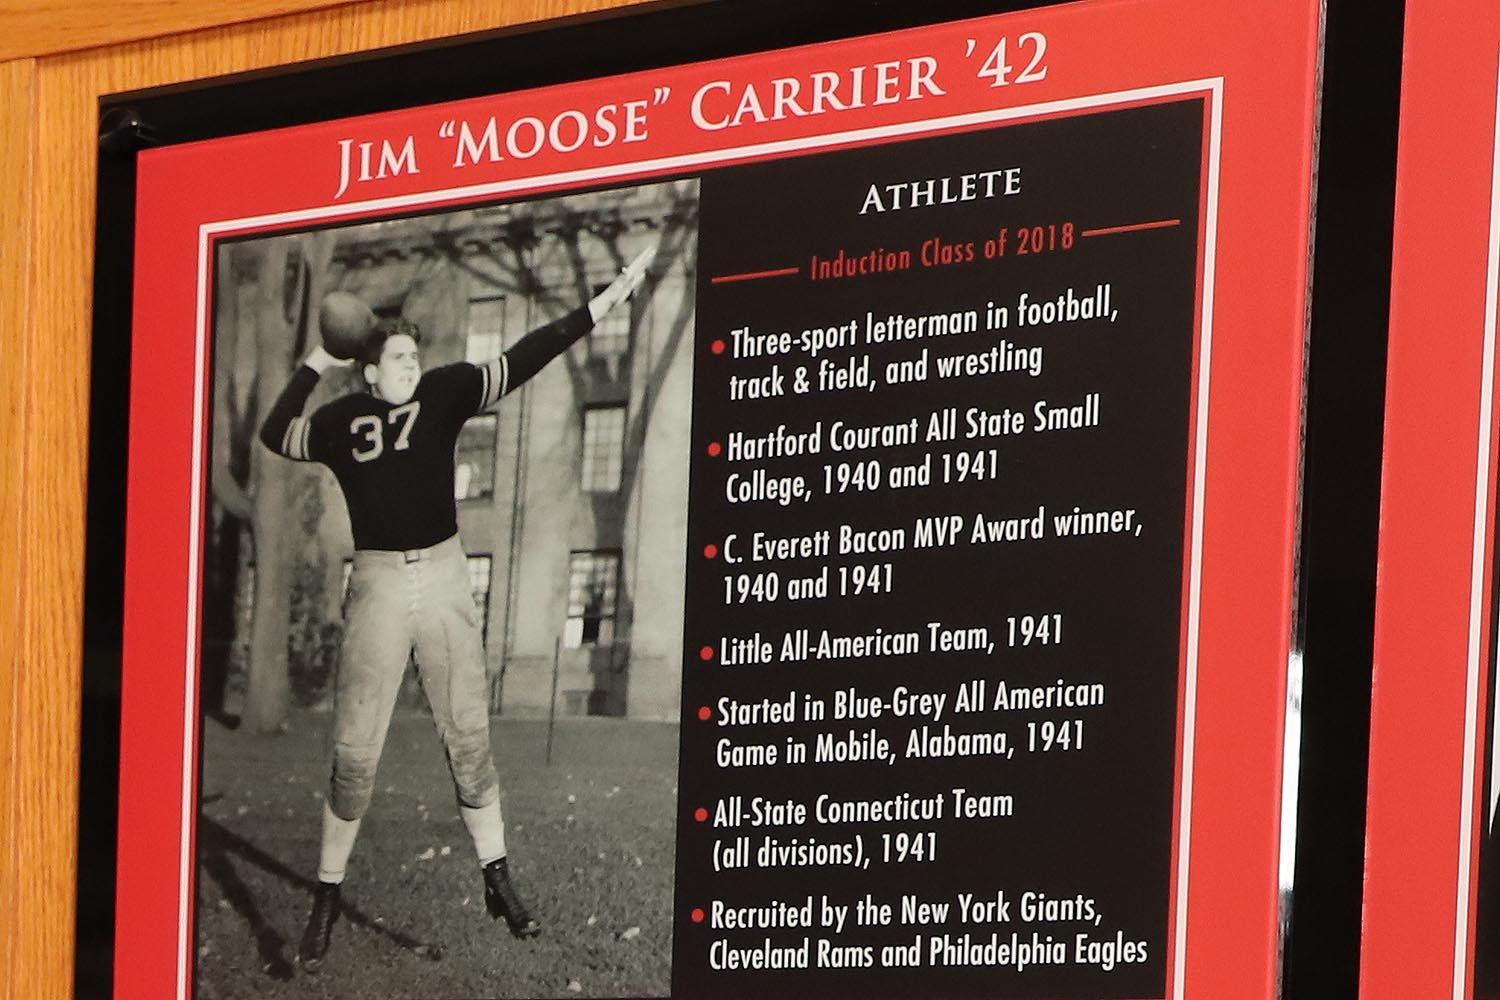 James Carrier '42 (football, track and field, wrestling) – James, who is being inducted posthumously, was a three-sport athlete at Wesleyan who competed in football, track, and wrestling. He excelled in football and was named a team captain during his junior and senior seasons. James started all 24 games during his four-year career and led the football team to a Little Three Championship in 1939. He rushed for 12 career touchdowns, passed for 22, converted 35 points-after-touchdowns (PATs), and scored or contributed to 242 points during his career as a Cardinal. James also starred in the New Year's Collegiate Football Classic in Mobile, Alabama, in 1942.